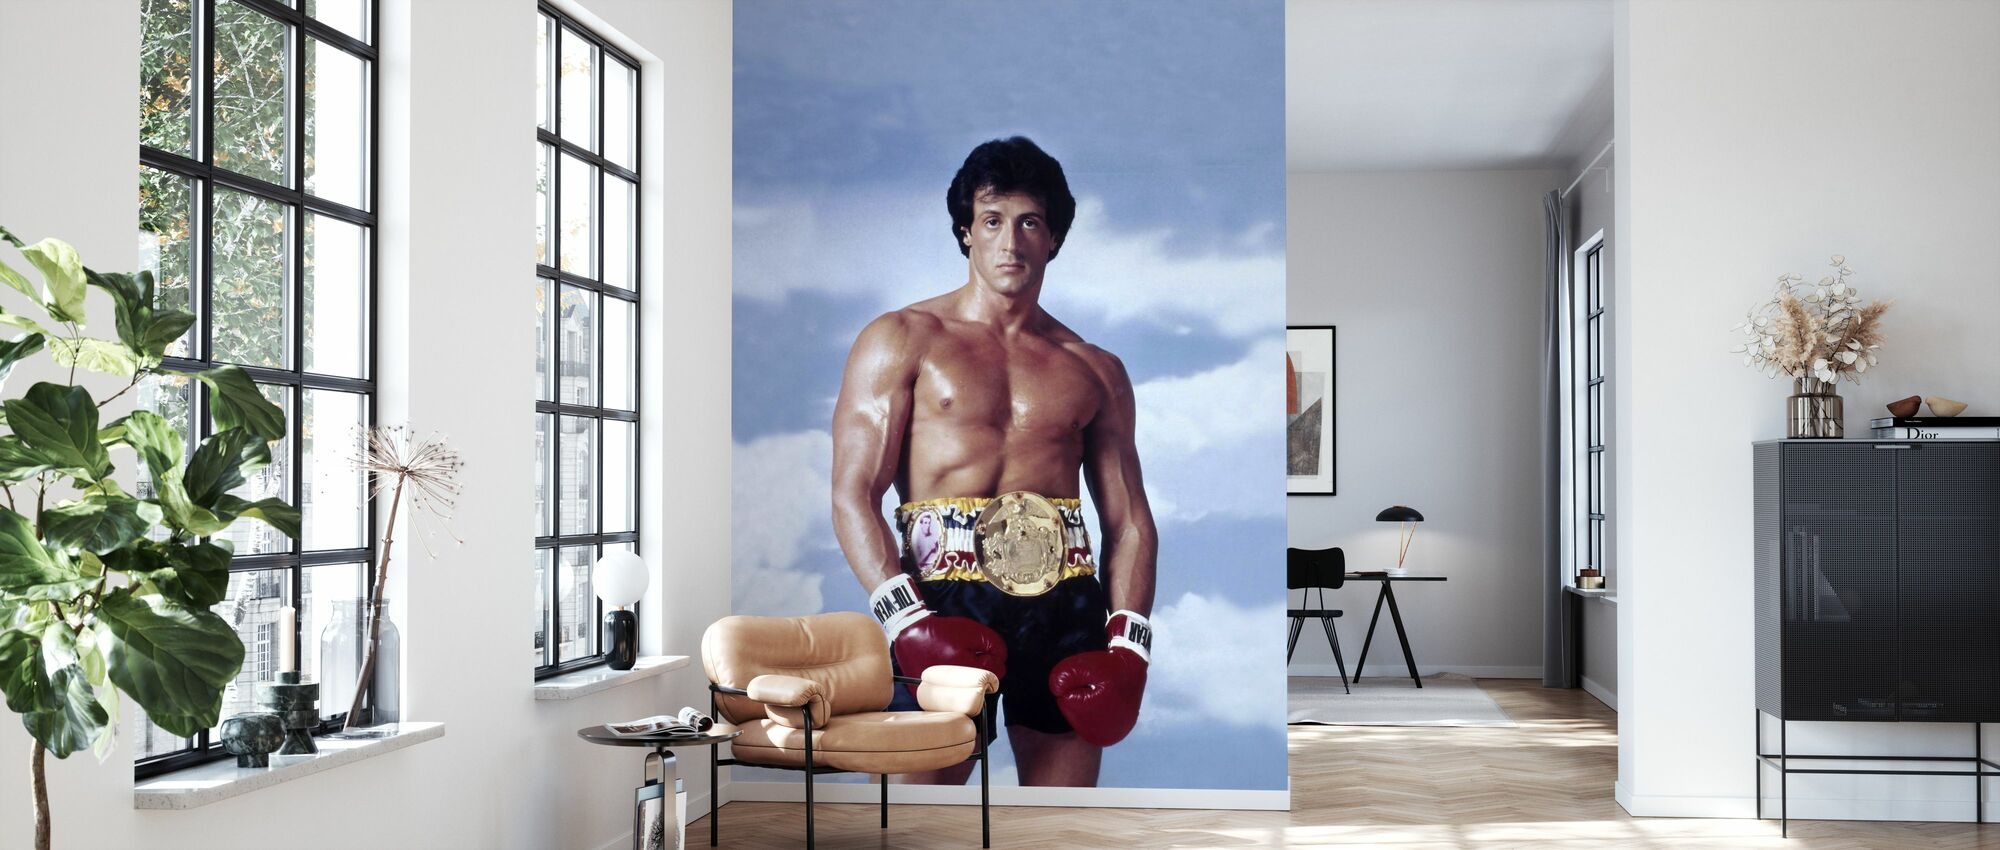 Sylvester Stallone in Rocky III - Wallpaper - Living Room